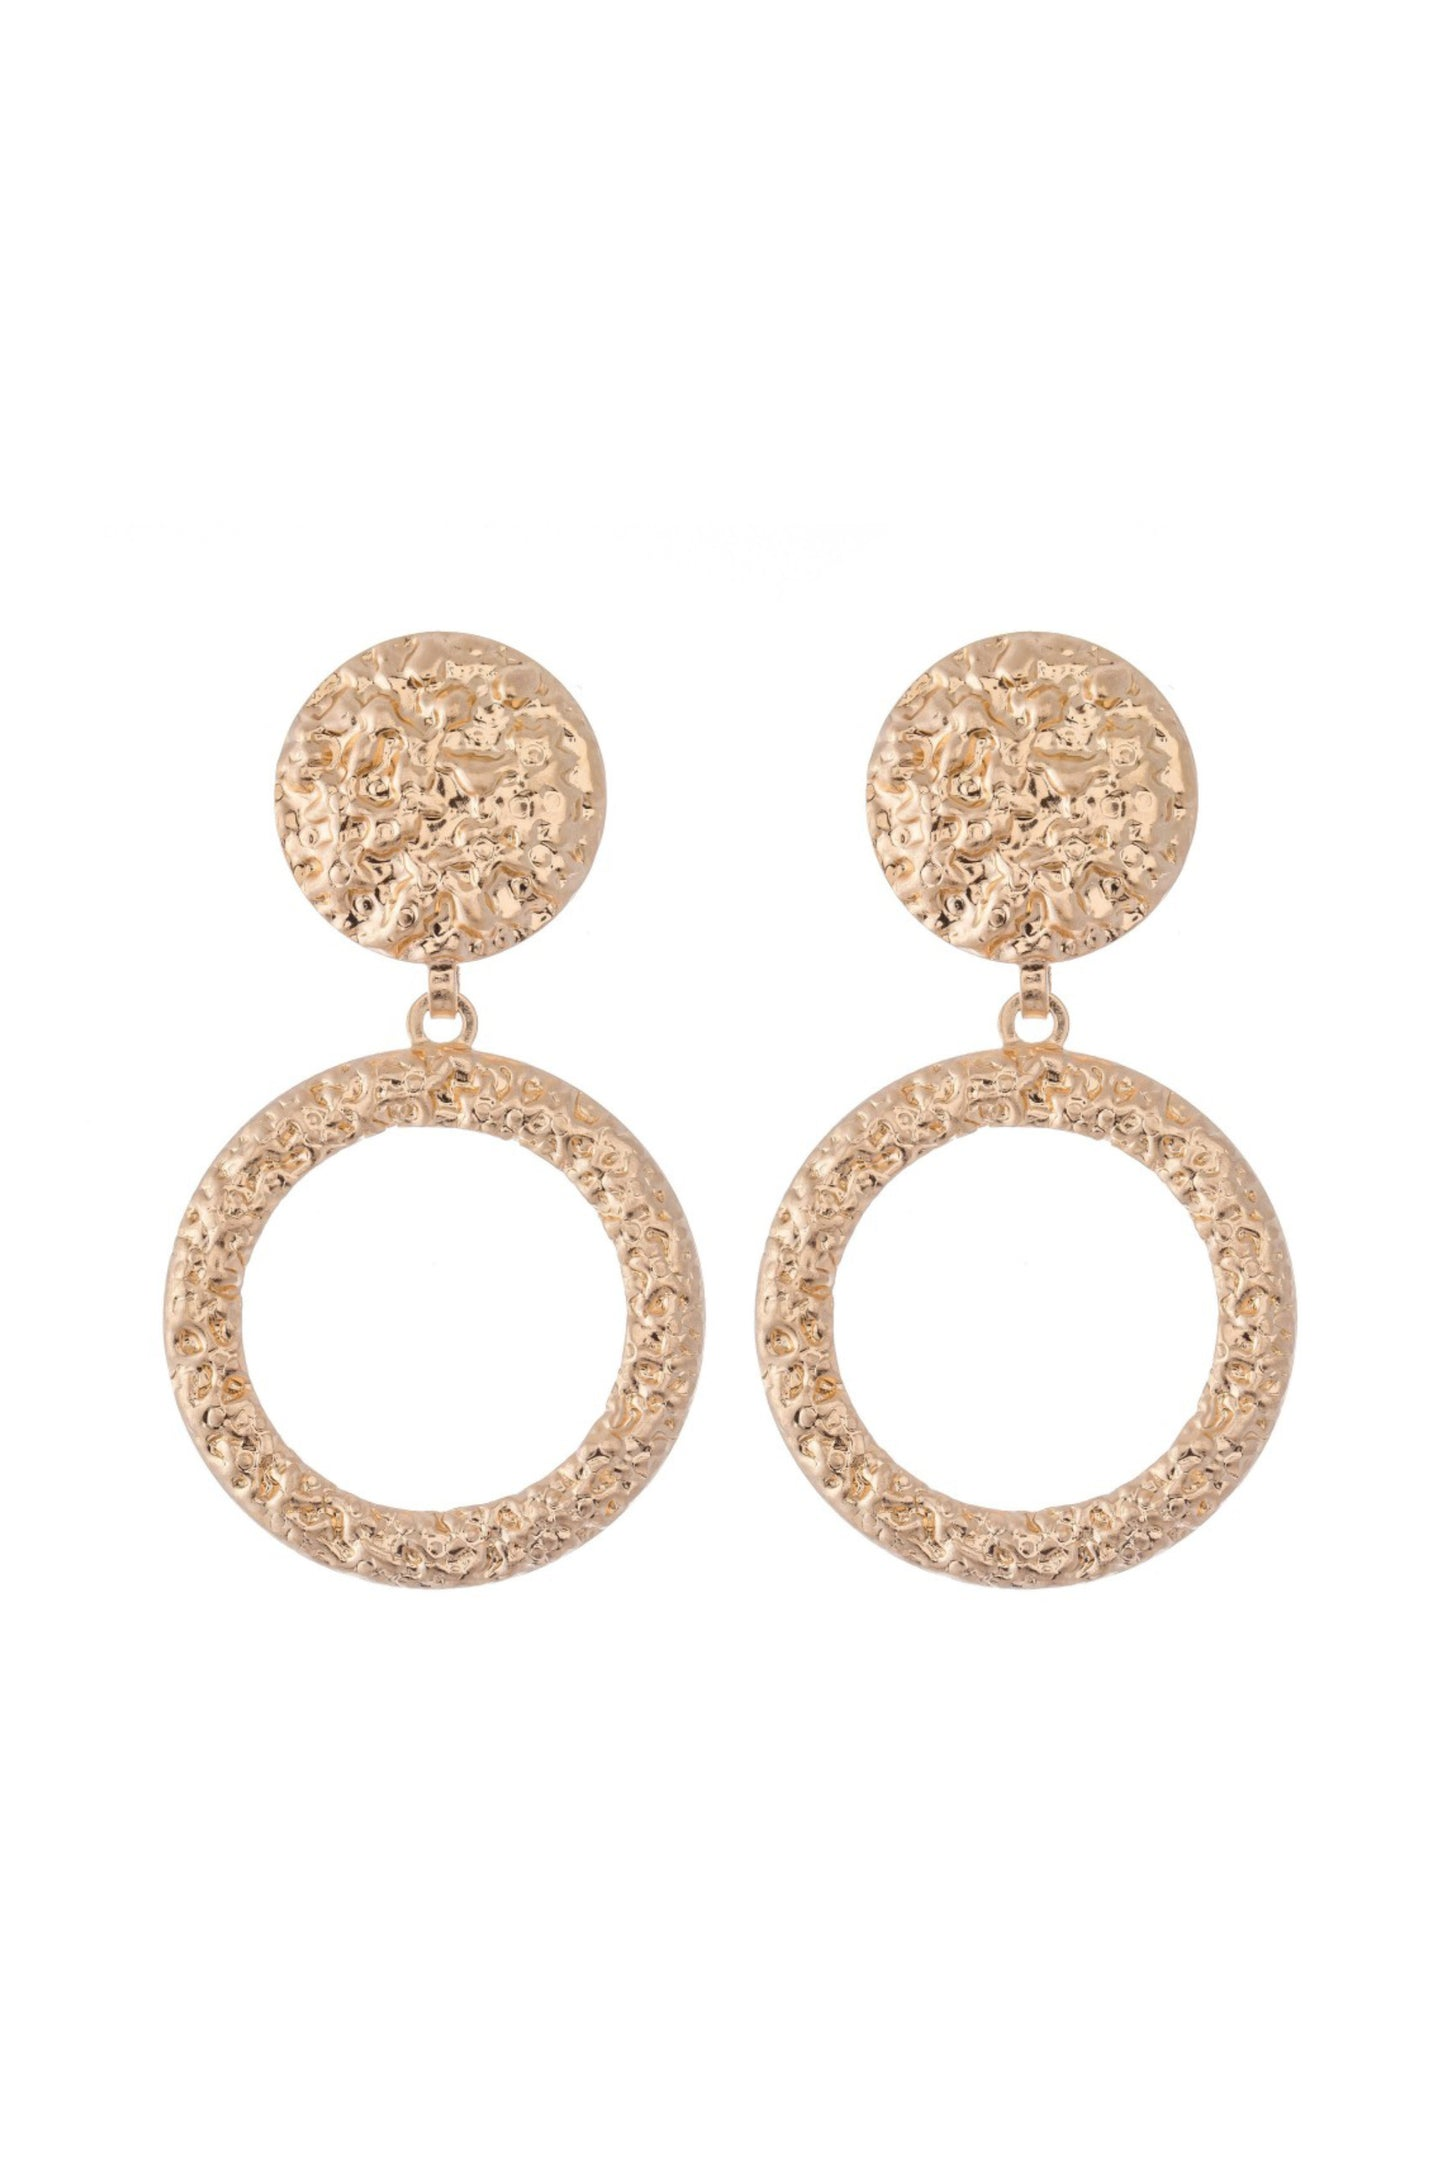 Metal Textured Statement Earrings - Gold